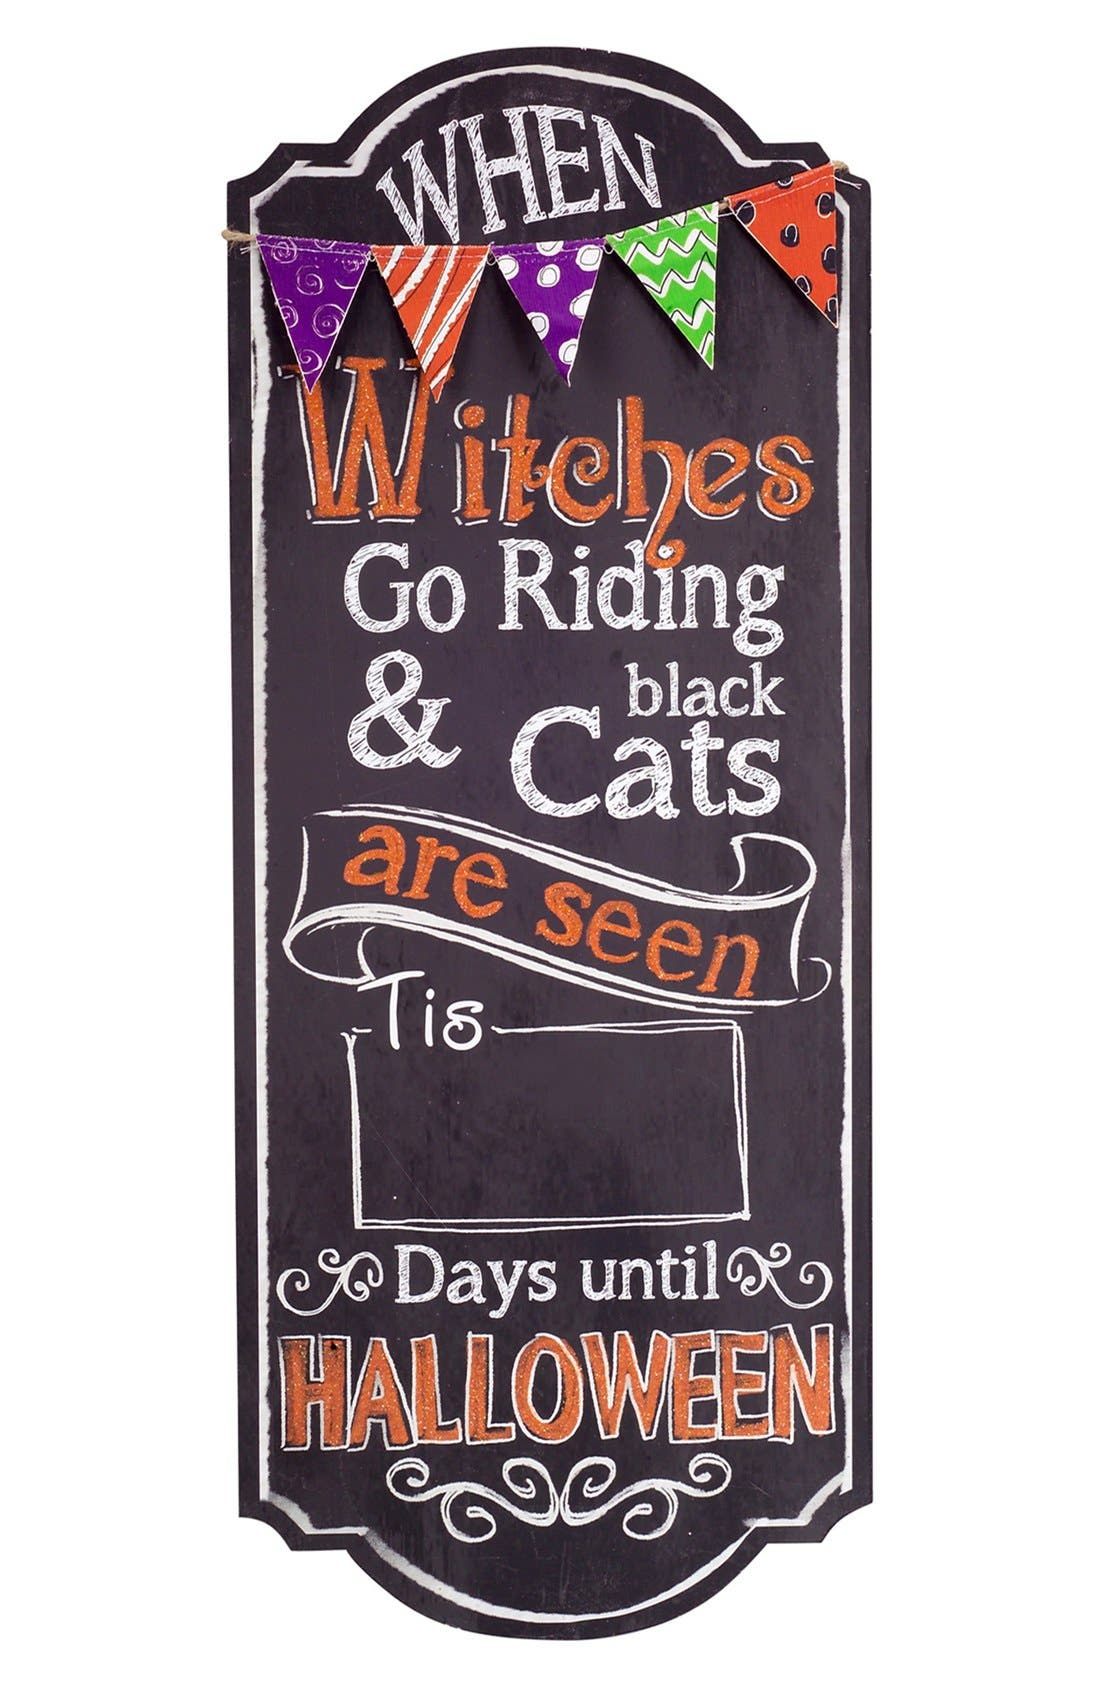 Alternate Image 1 Selected - Melrose Gifts Halloween Countdown Wall Plaque